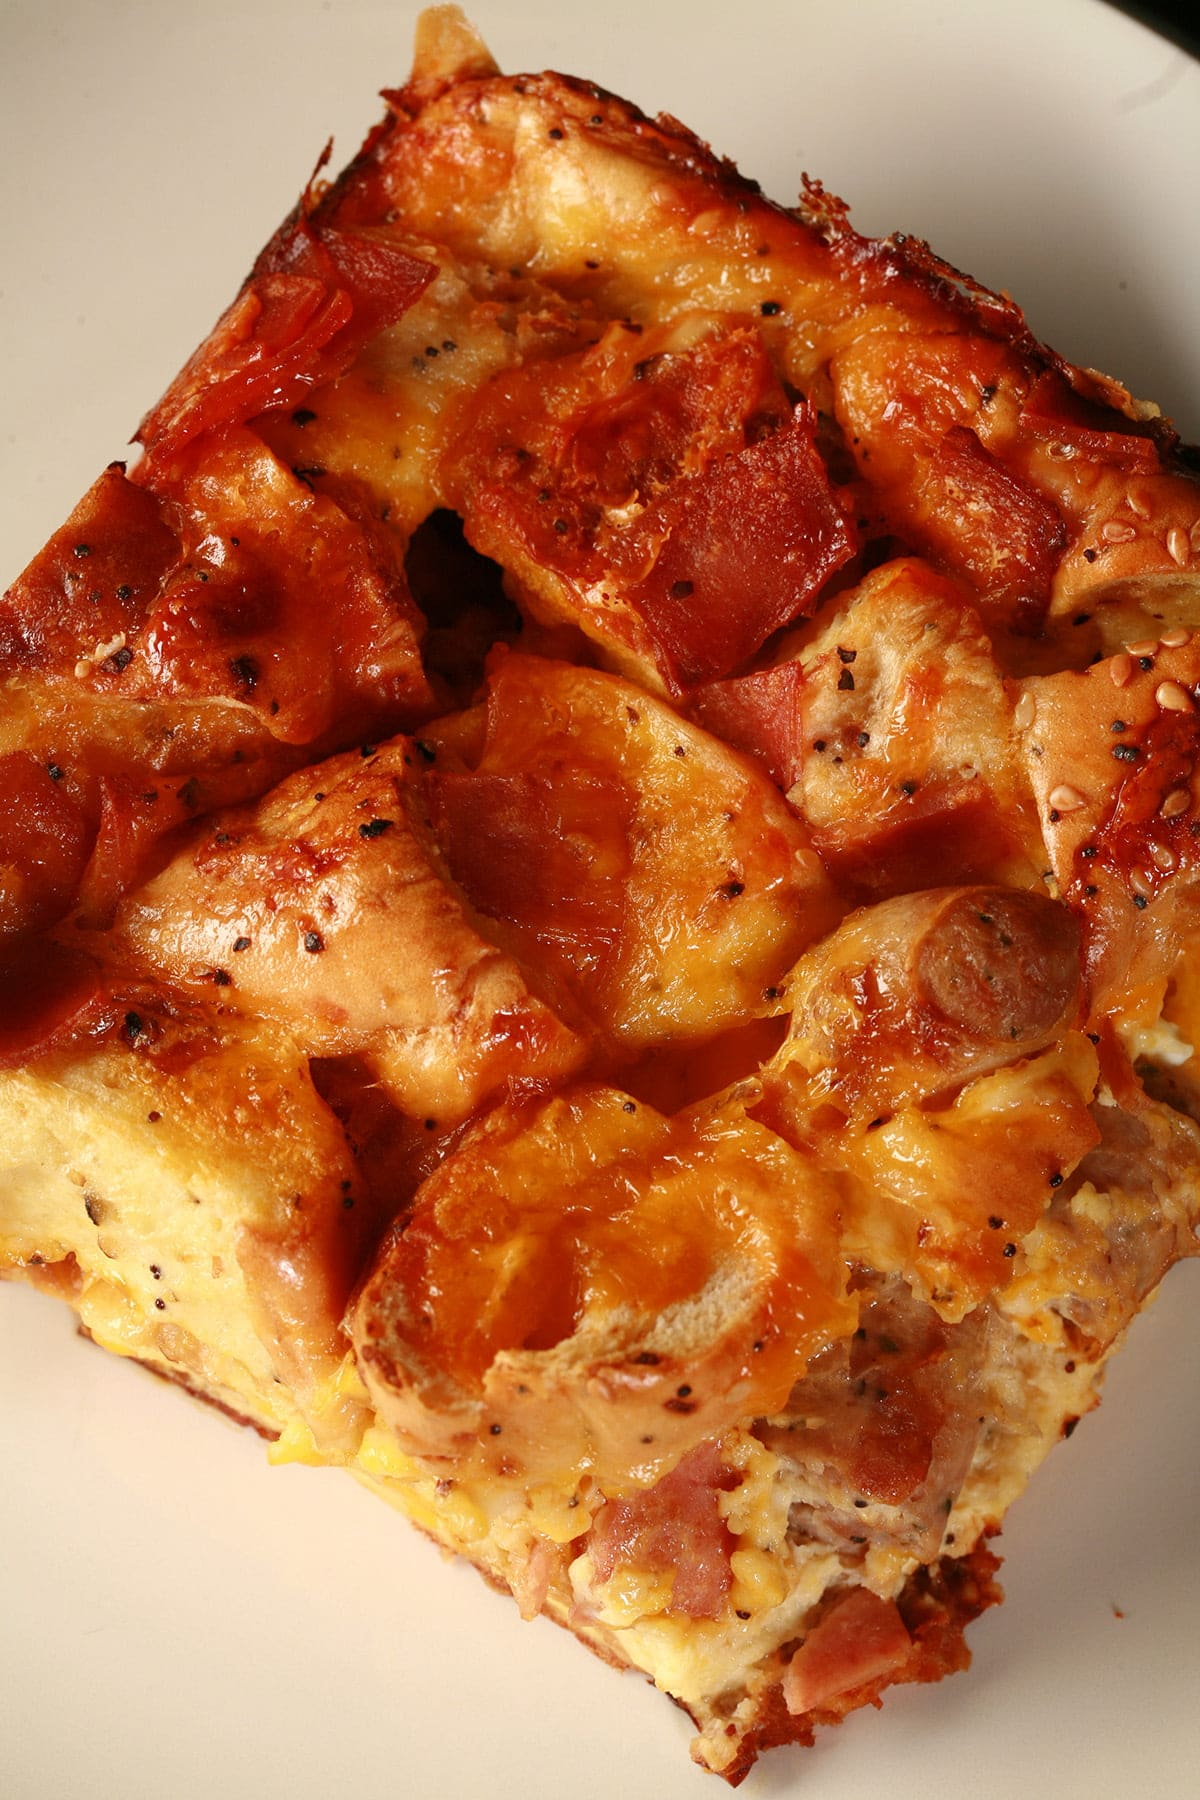 A square serving of breakfast bagel casserole. Eggs, bacon, chunks of bagel, and pieces of sausage are visible in the cheesy casserole.